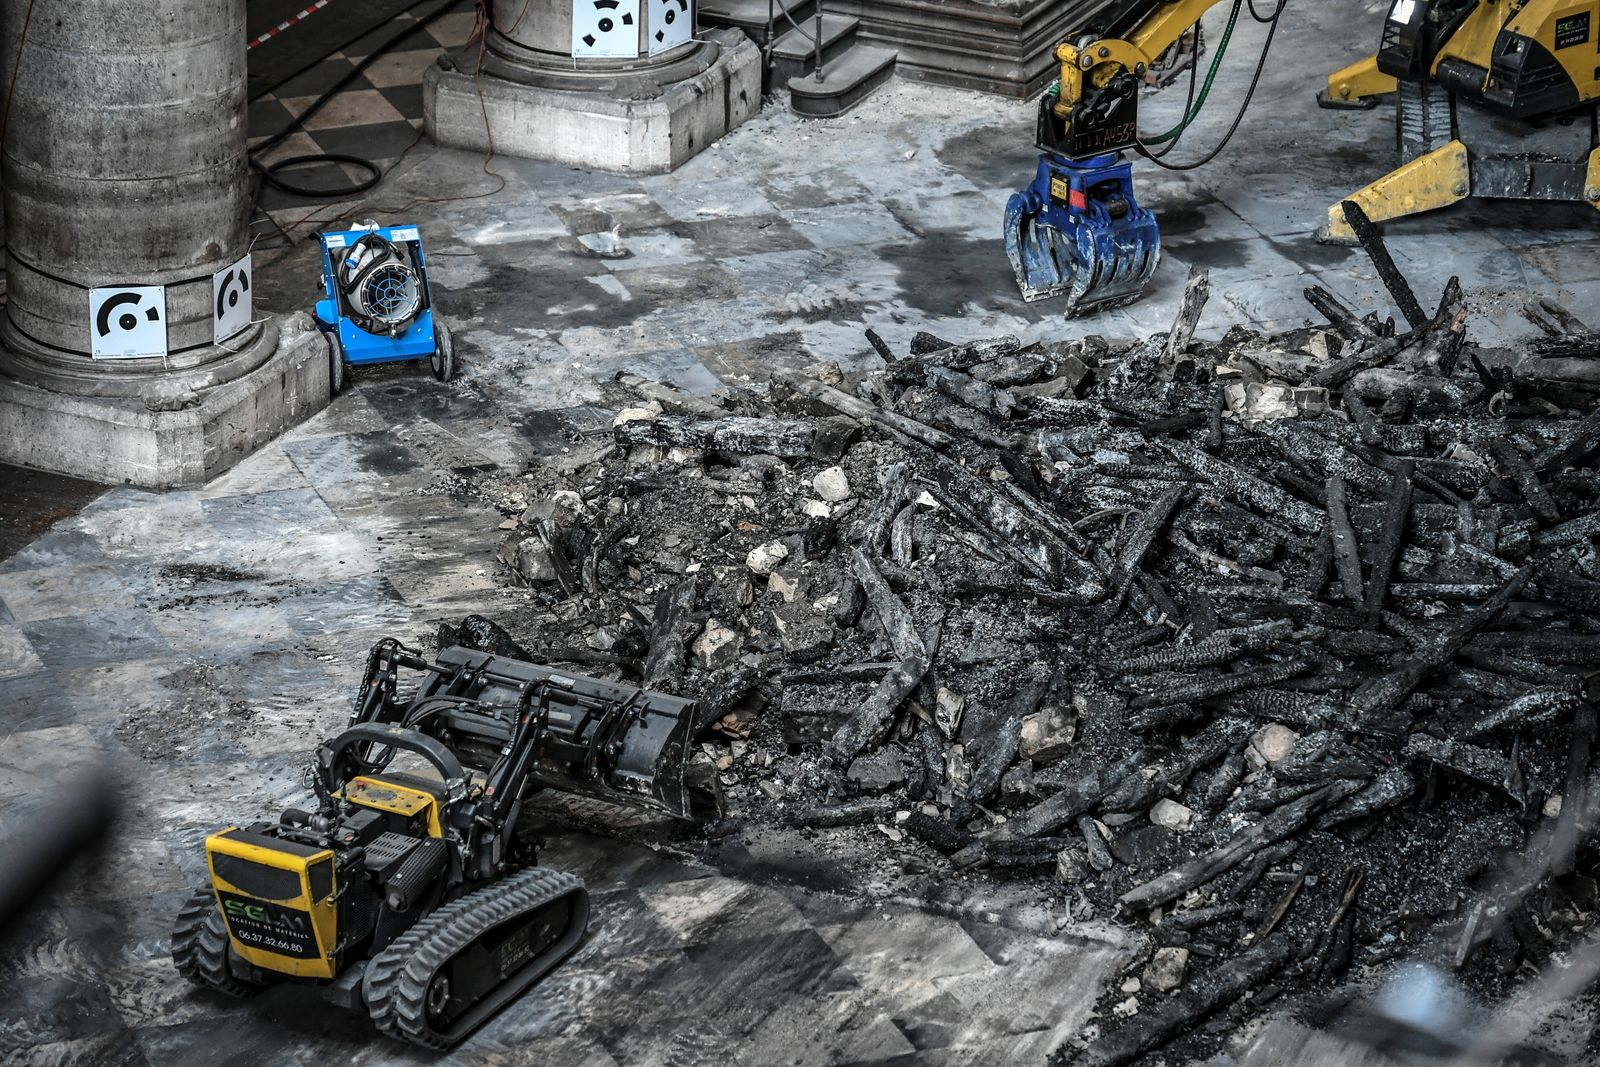 Excavators are pictured during preliminary work at the Notre-Dame de Paris Cathedral, Wednesday, July 17, 2019 in Paris. The chief architect of France's historic monuments says that three months after the April 15 fire that devastated Notre Dame Cathedral the site is still being secured. (Stephane de Sakutin/Pool via AP)